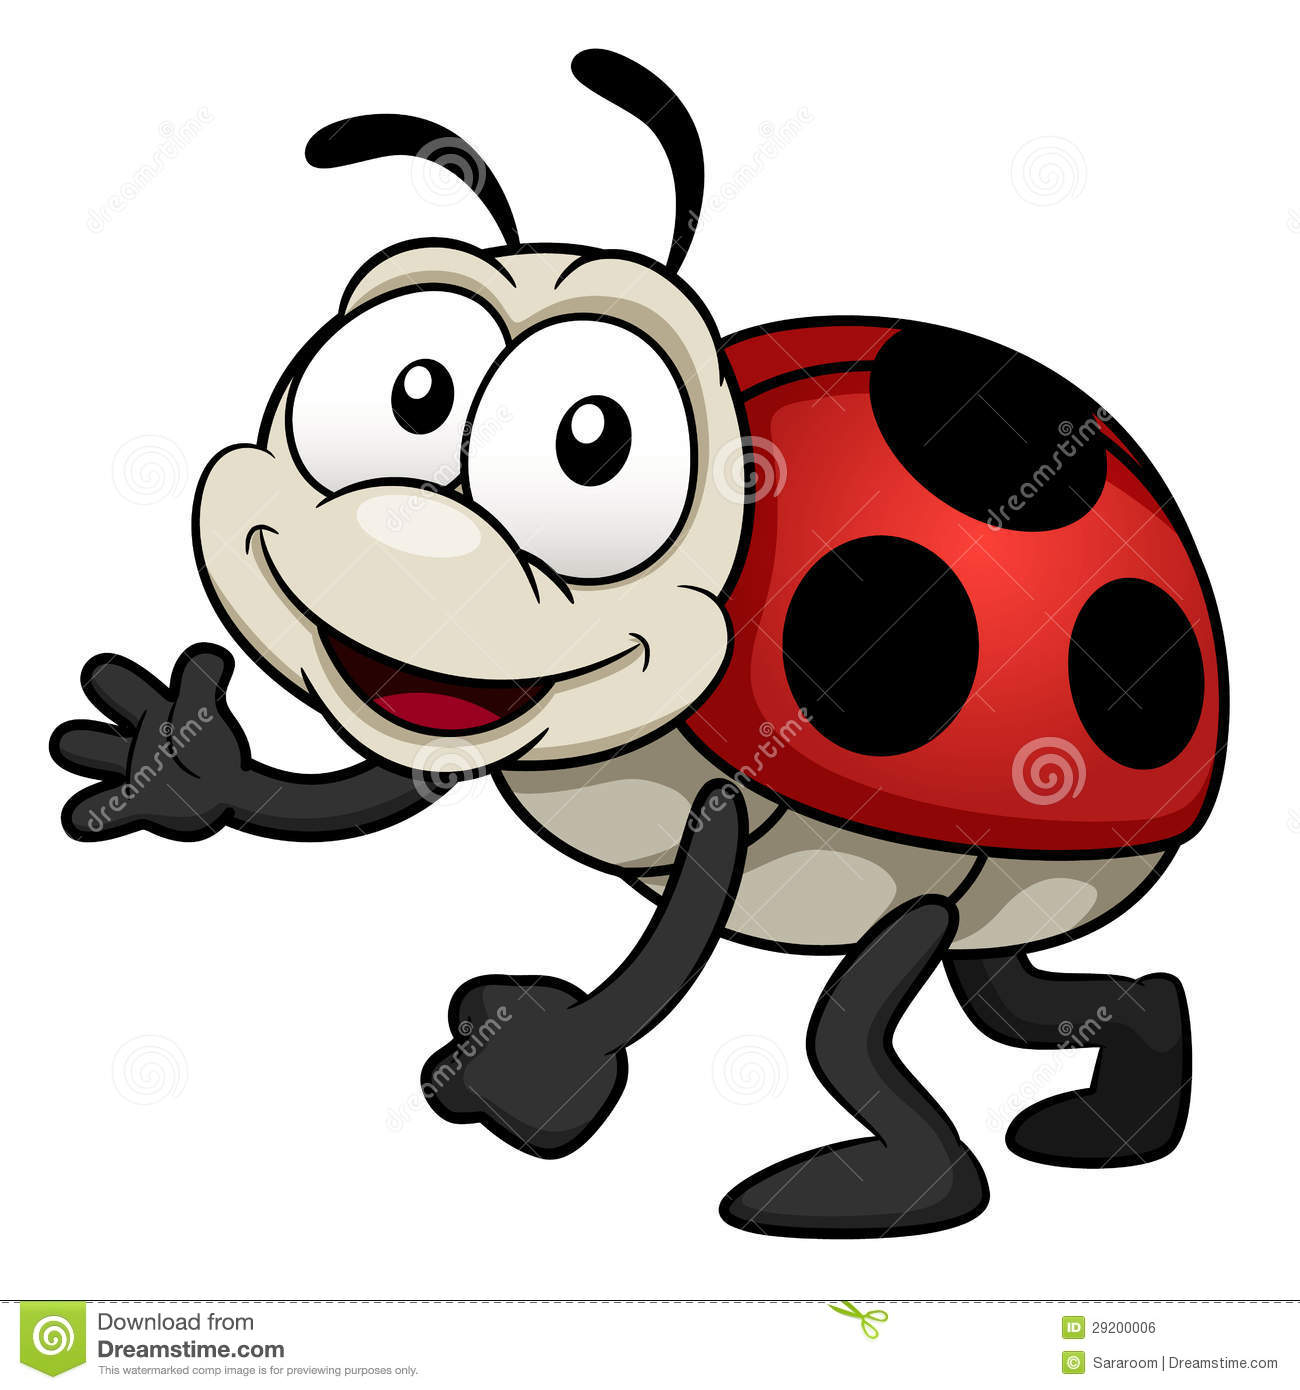 Cartoon Lady Bug Royalty Free Stock Image   Image  29200006